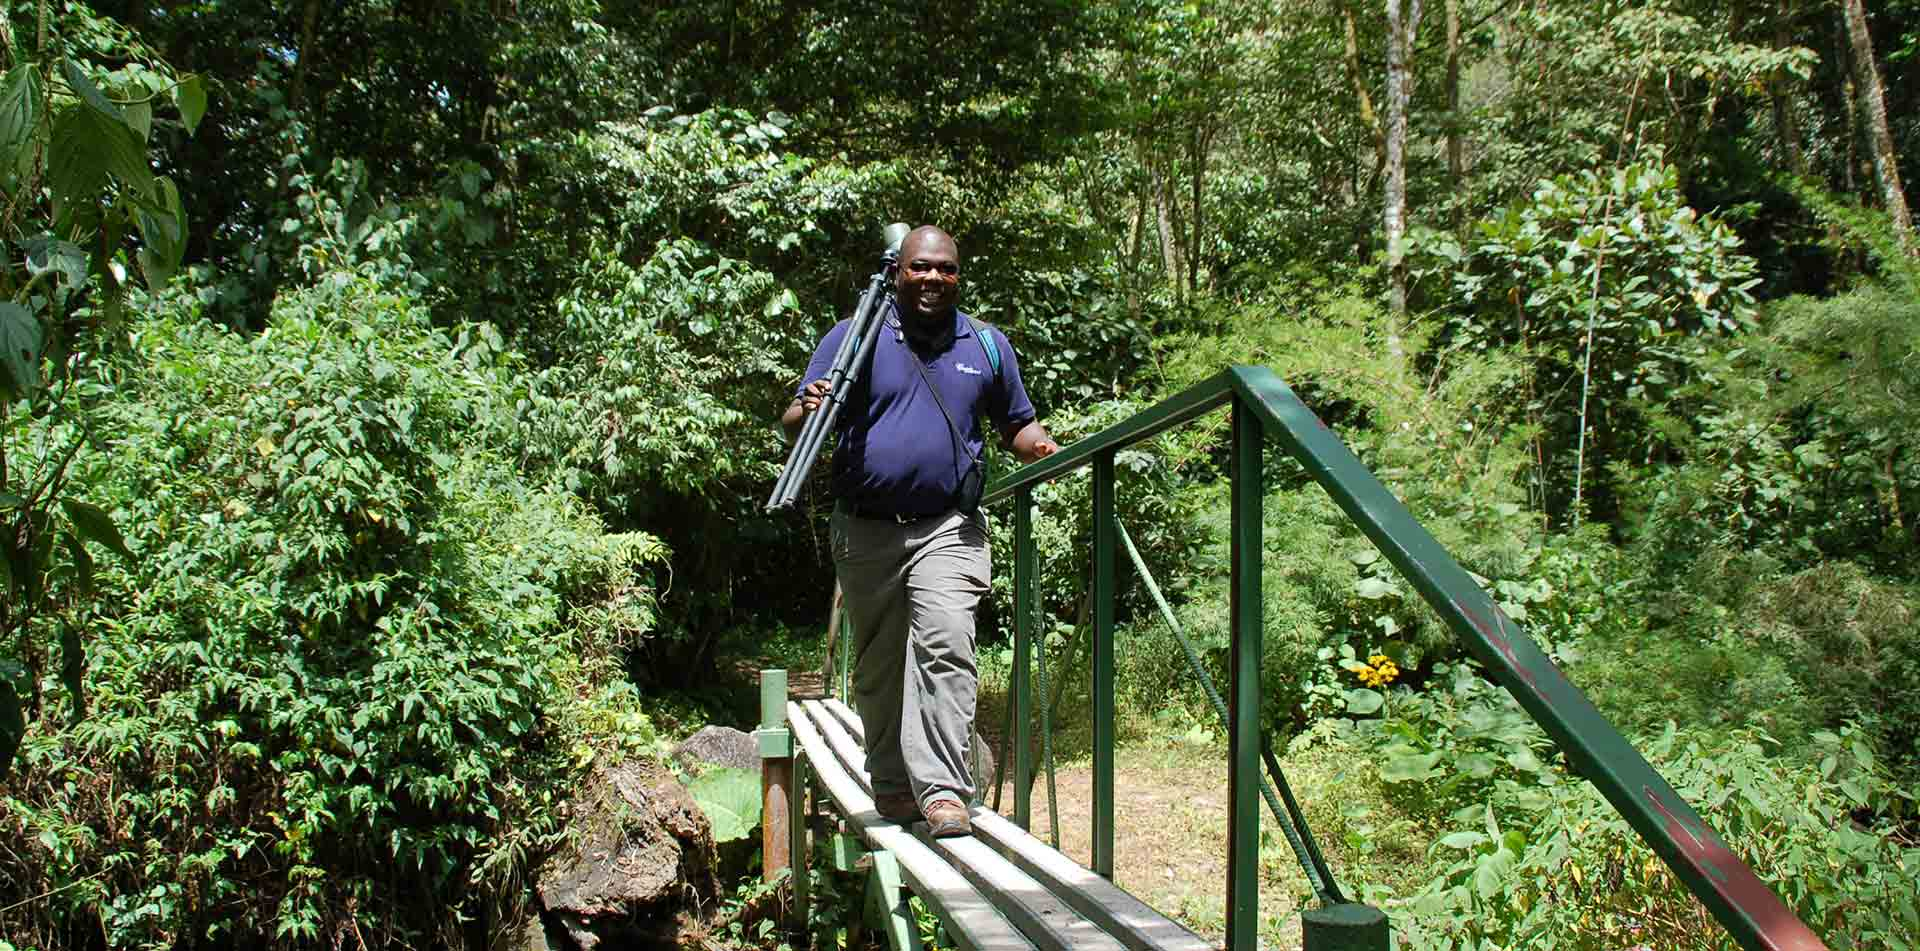 Central America Panama lush jungle local guide walking on bridge smiling carrying camera - luxury vacation destinations